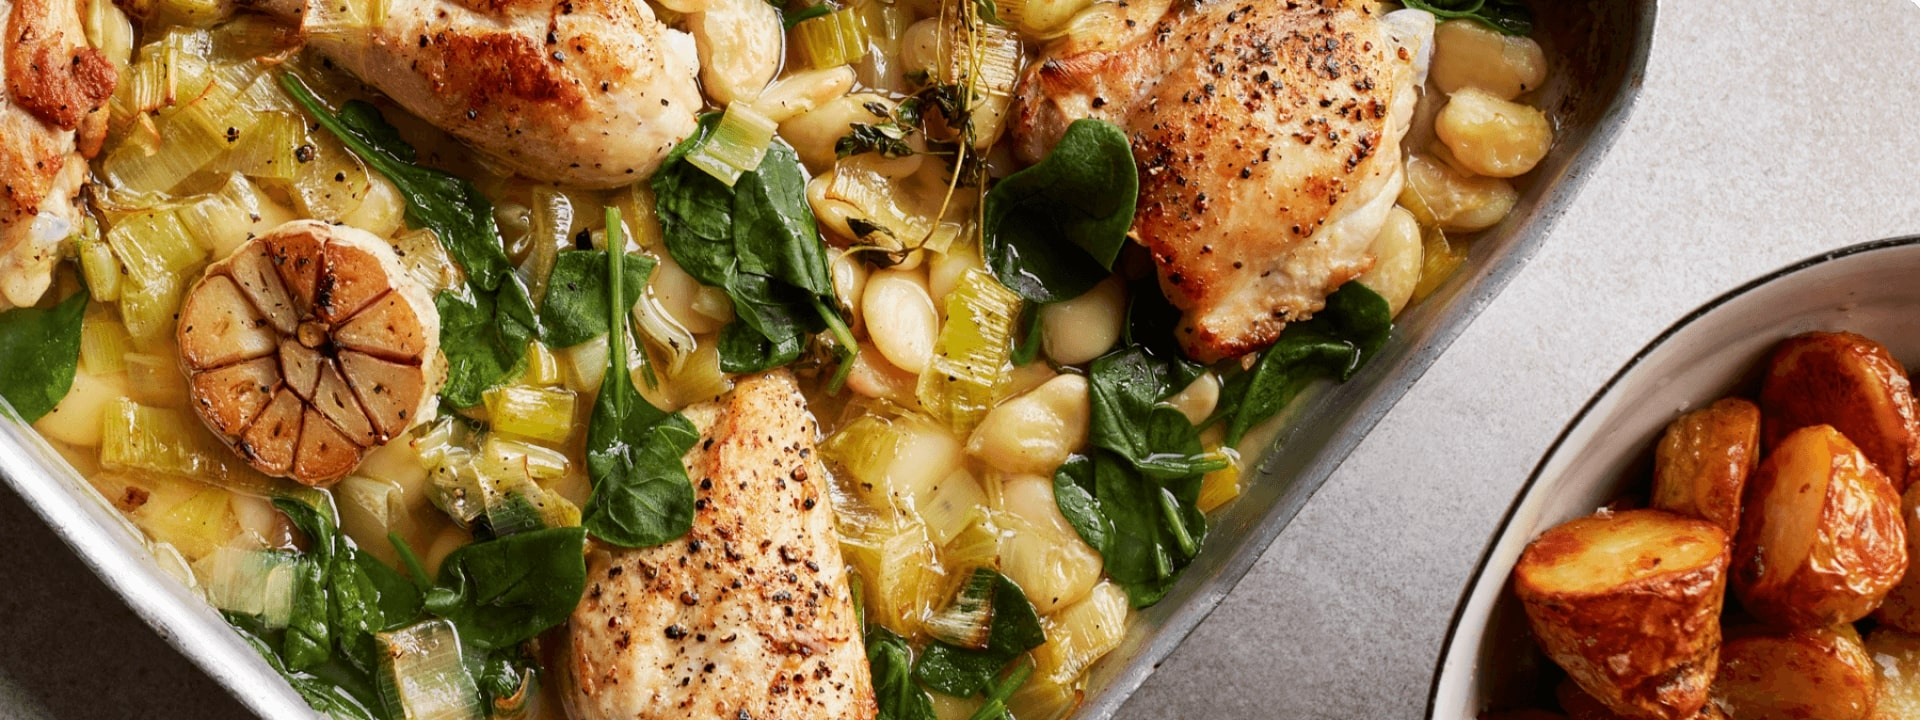 CroppedFocusedImage192072050-50-TRAY-BAKED-CHICKEN-WITH-BUTTER-BEANS-LEEKS-AND-SPINACH